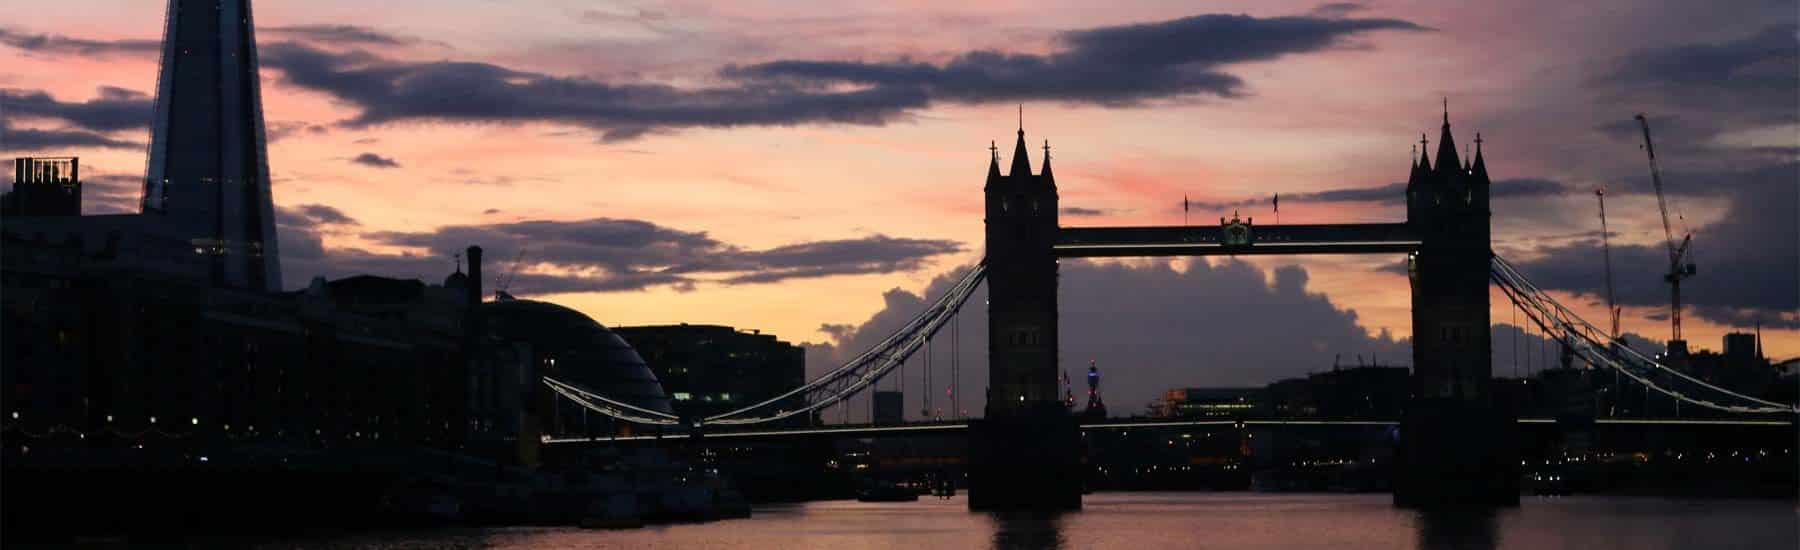 Thames Sunday Evening Cruise, The Shard & Tower Bridge